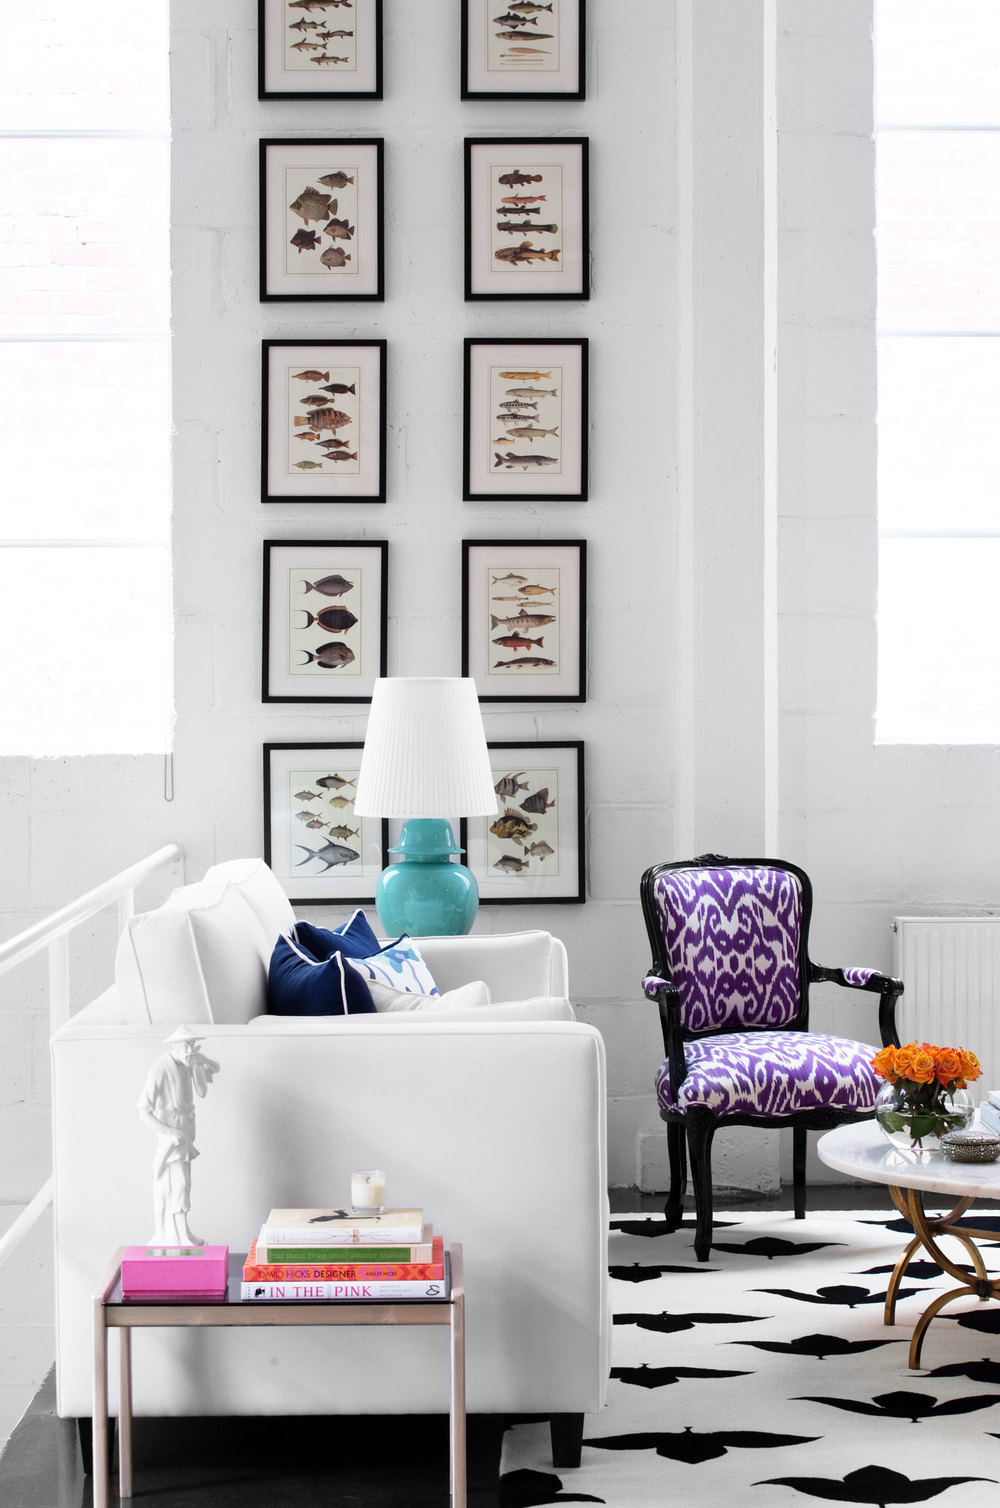 diane-bergeron-office-space-white-linen-slipcovered-sofa-purple-damask-louis-chair-aqua-veramic-table-lamp-fish-gallery-prints-black-and-white-madeline-winerib-cotton-rug-marble-coffee-table-diane-bergeron.jpg